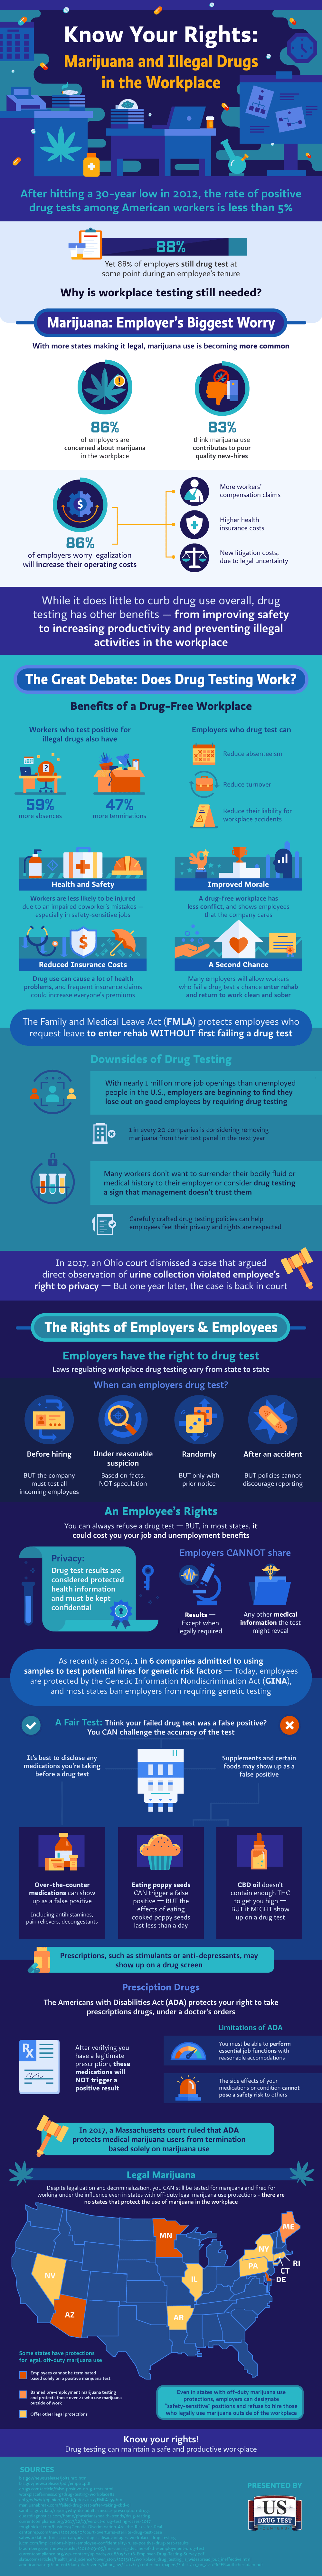 Rights And Responsibilities: Drug Testing In The Workplace